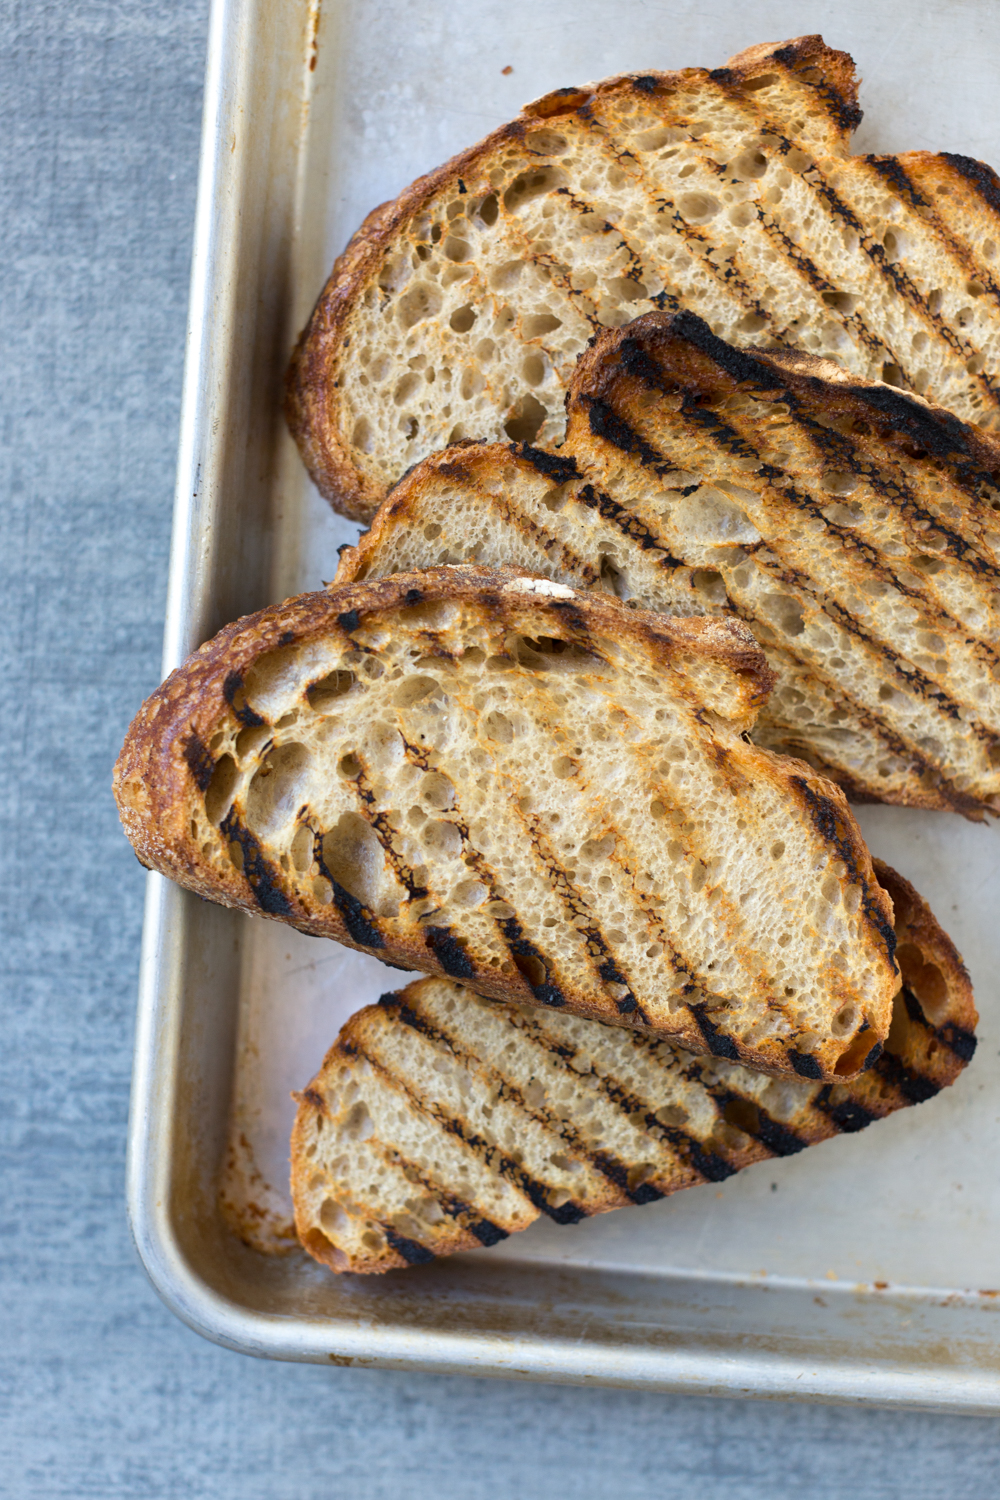 Broiled Orange Whipped Ricotta Toasts- grilled bread